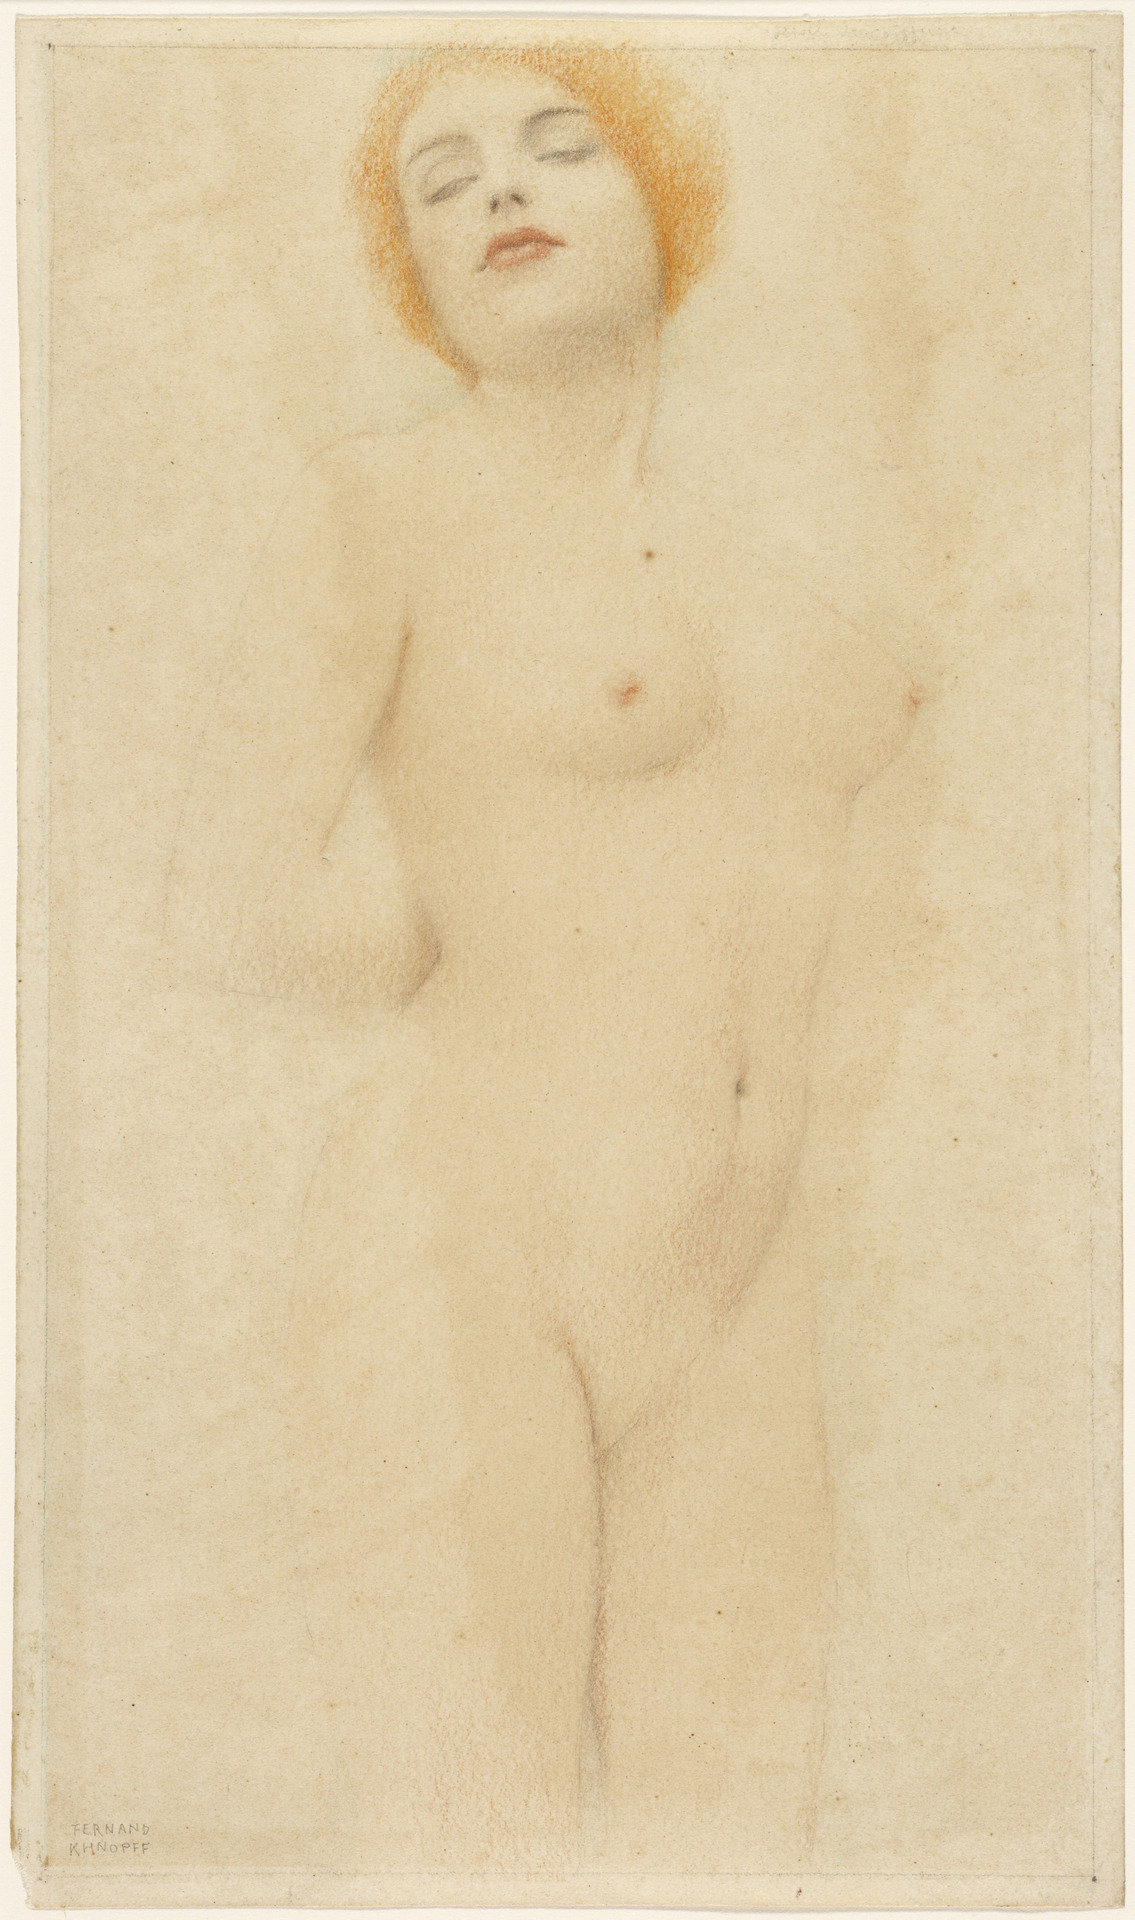 Study of a Nude, about 1912, Fernand Khnopff. Lent by Eva and Brian Sweeney.